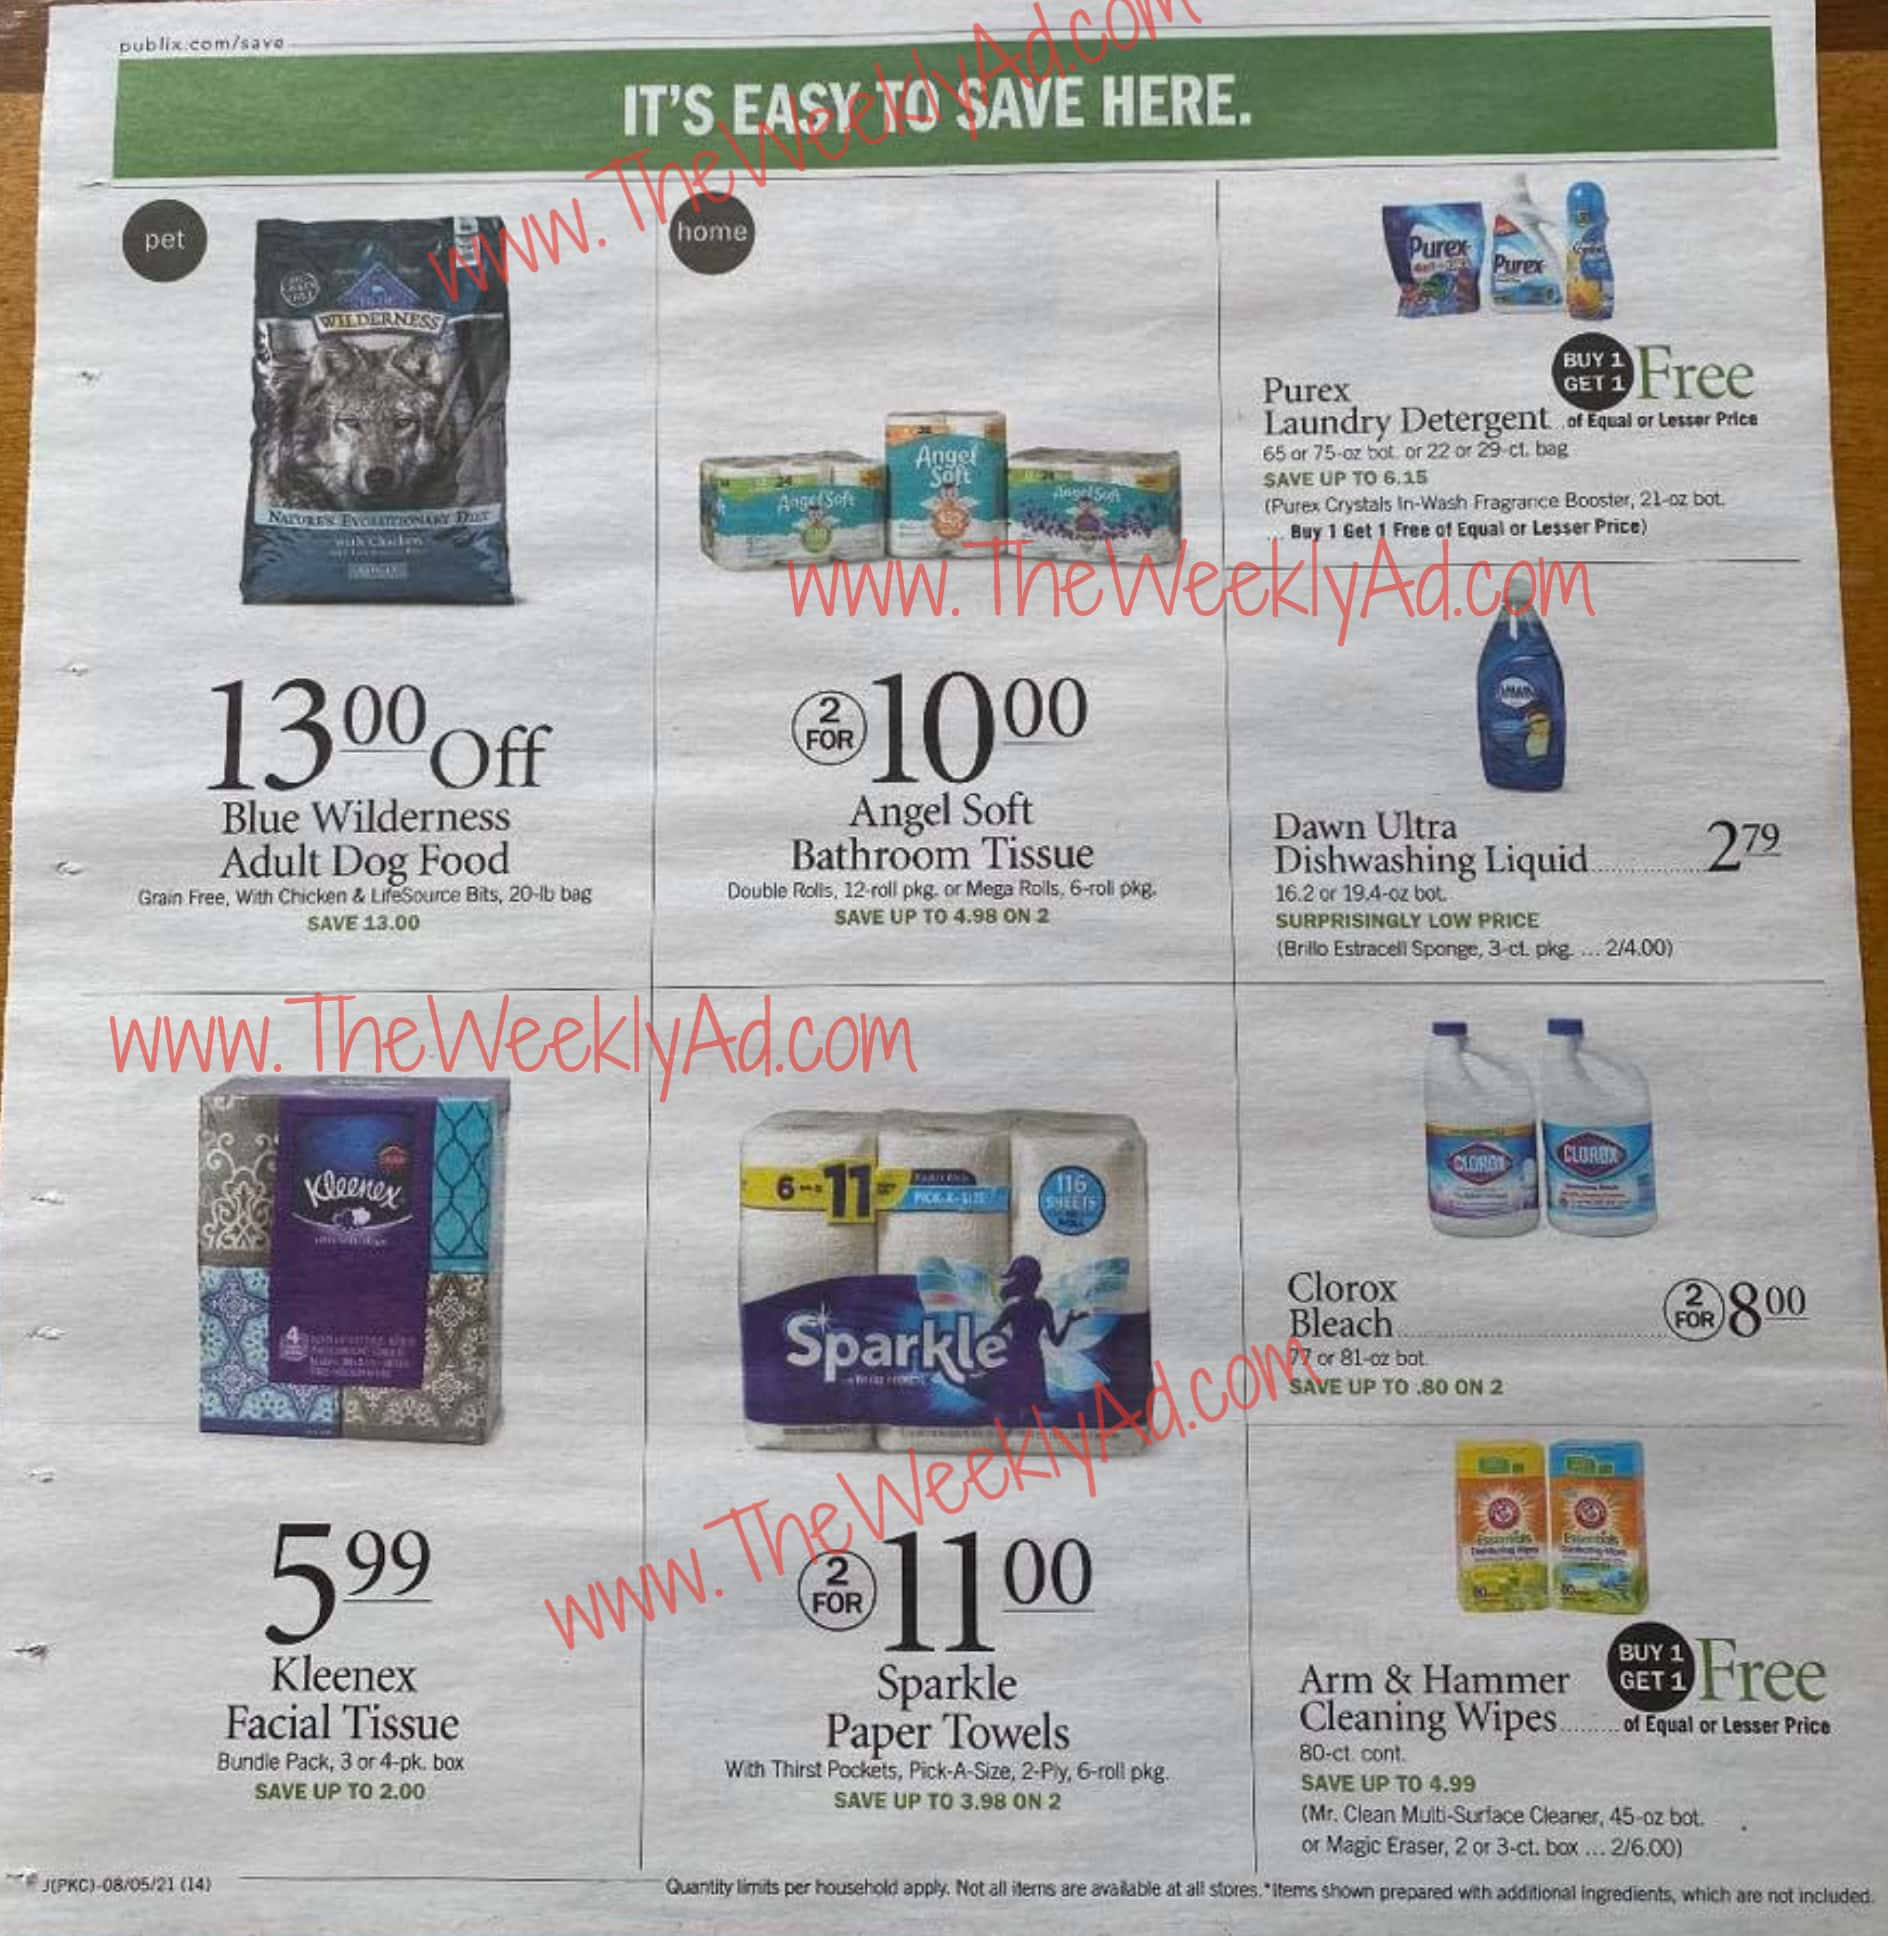 publix_weekly_ad_080421_14